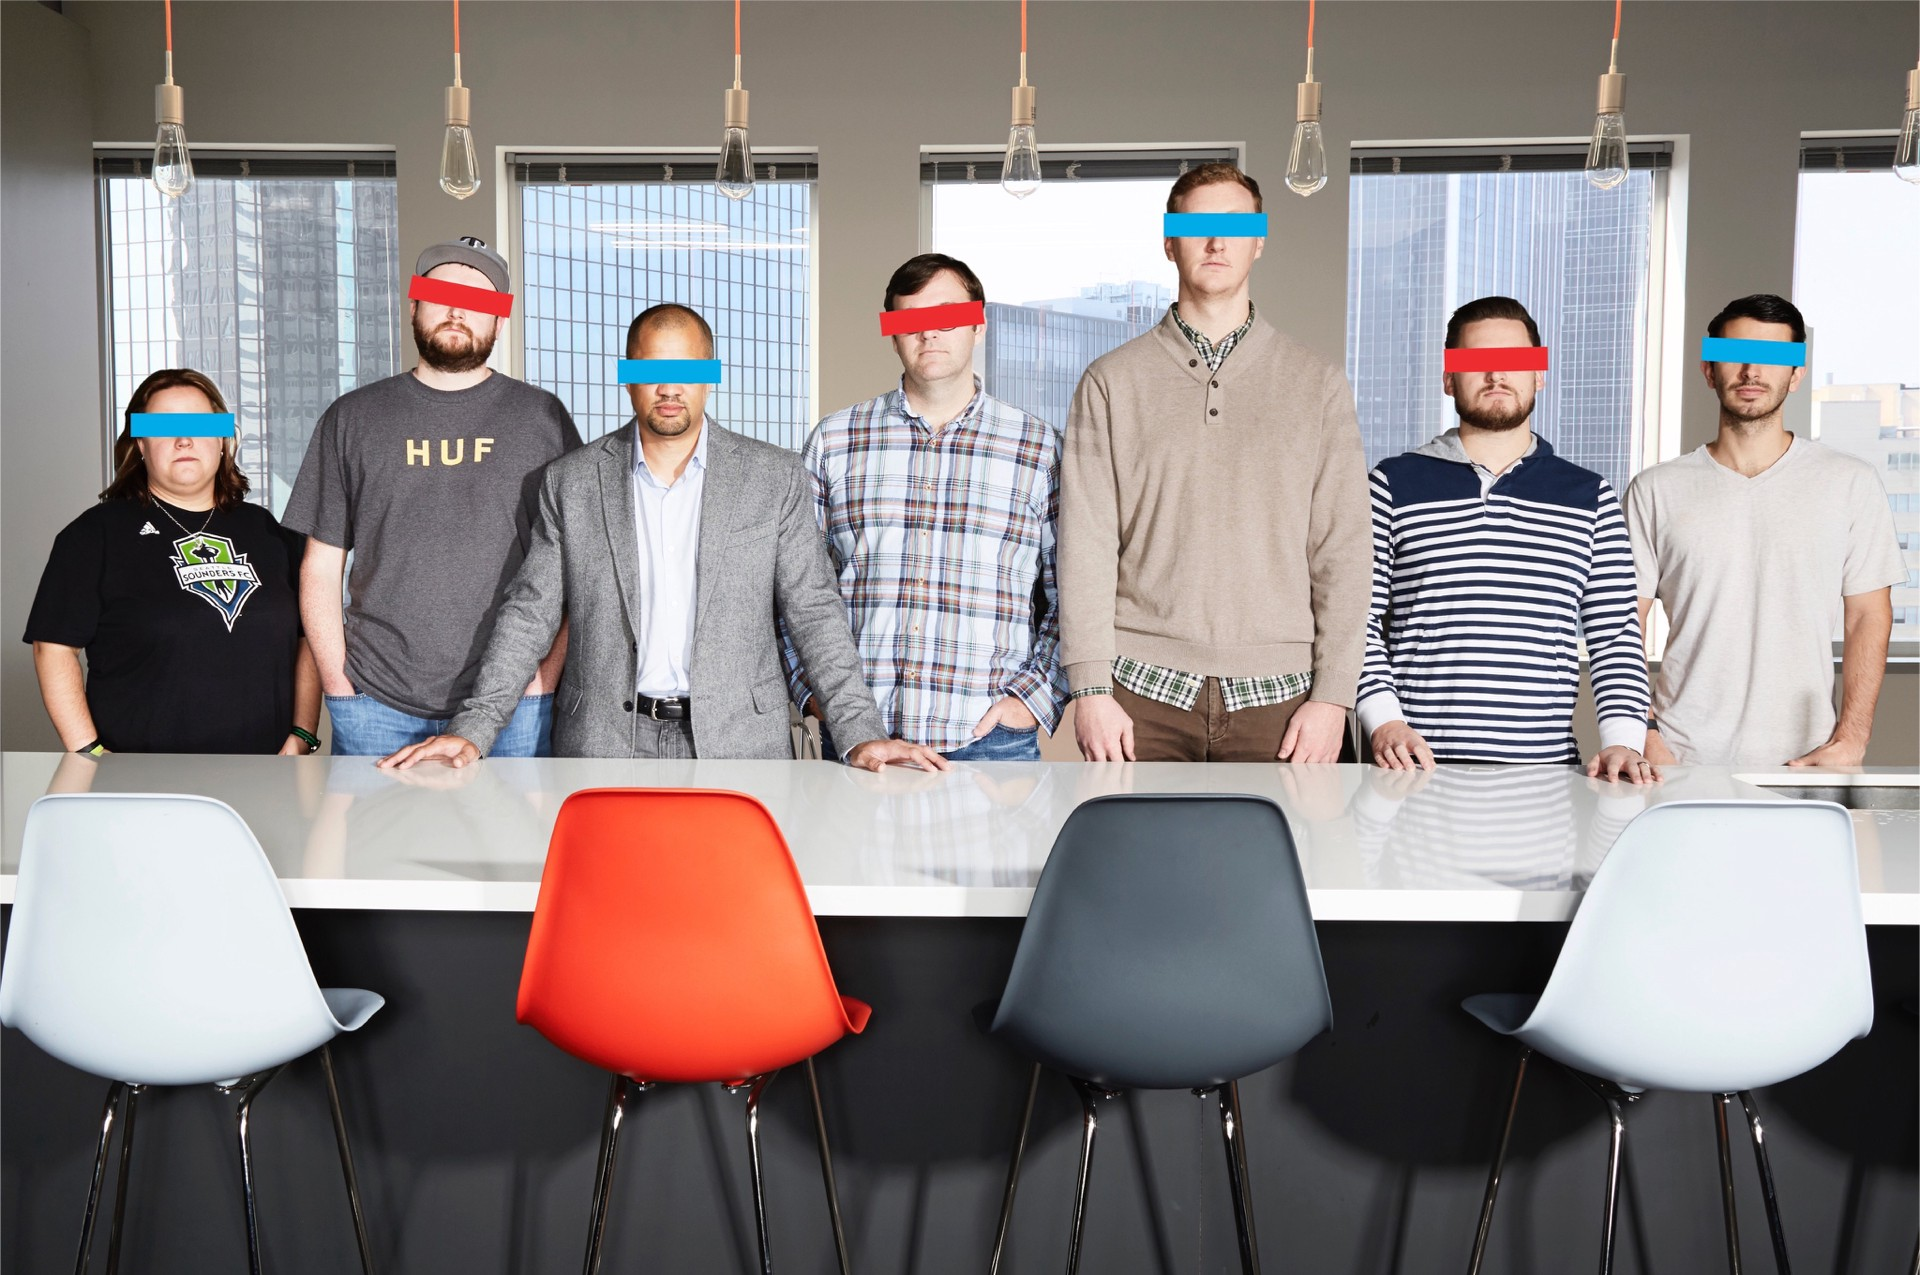 Photo of the seven person creative team at 70kft. They have bars as a graphics over their eyes, to obscure their identities.